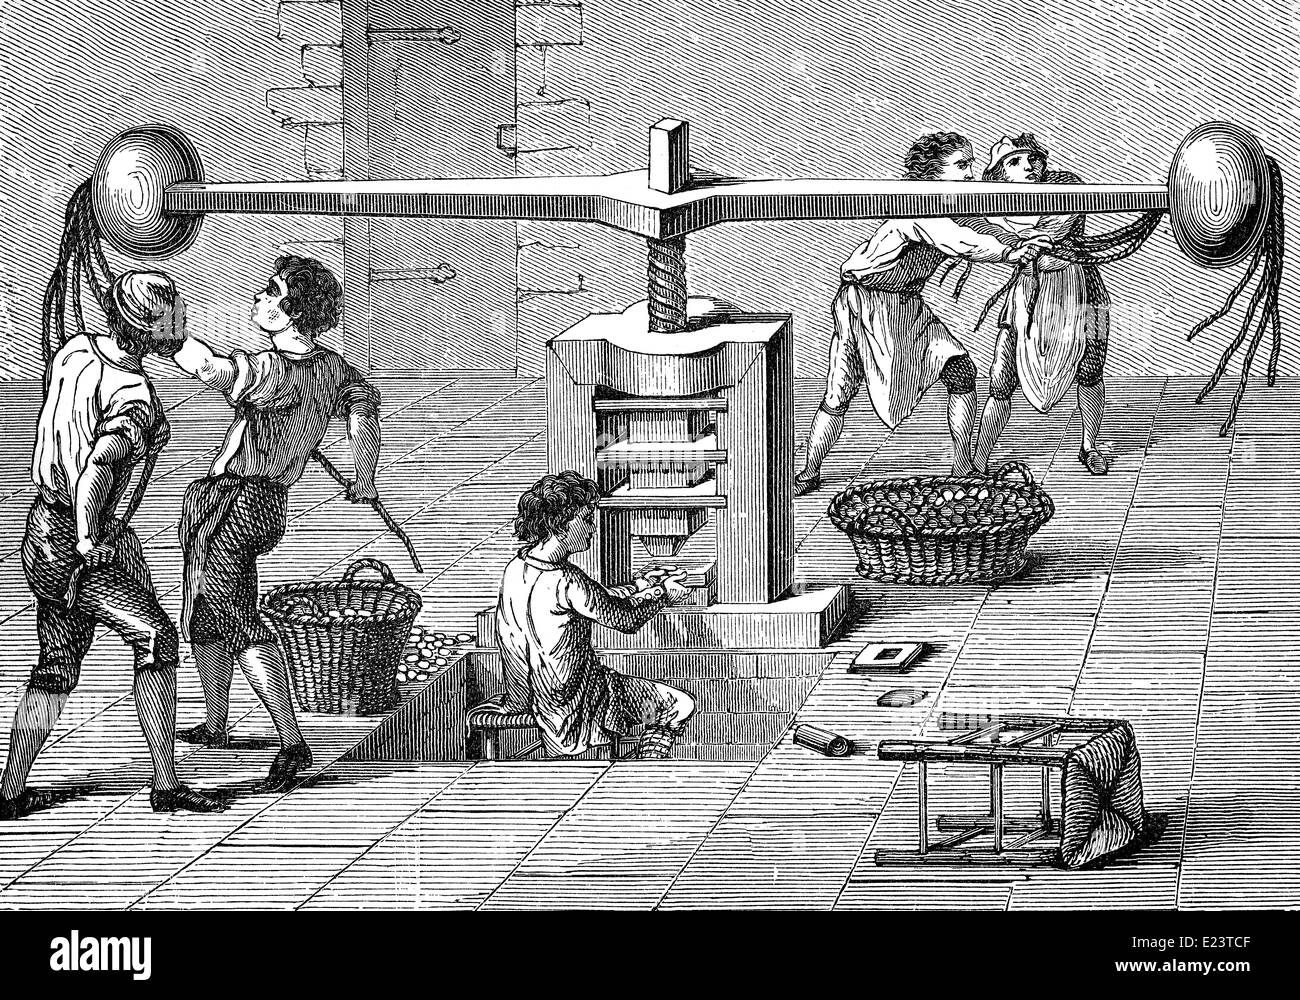 Historical machine for coin production - Stock Image